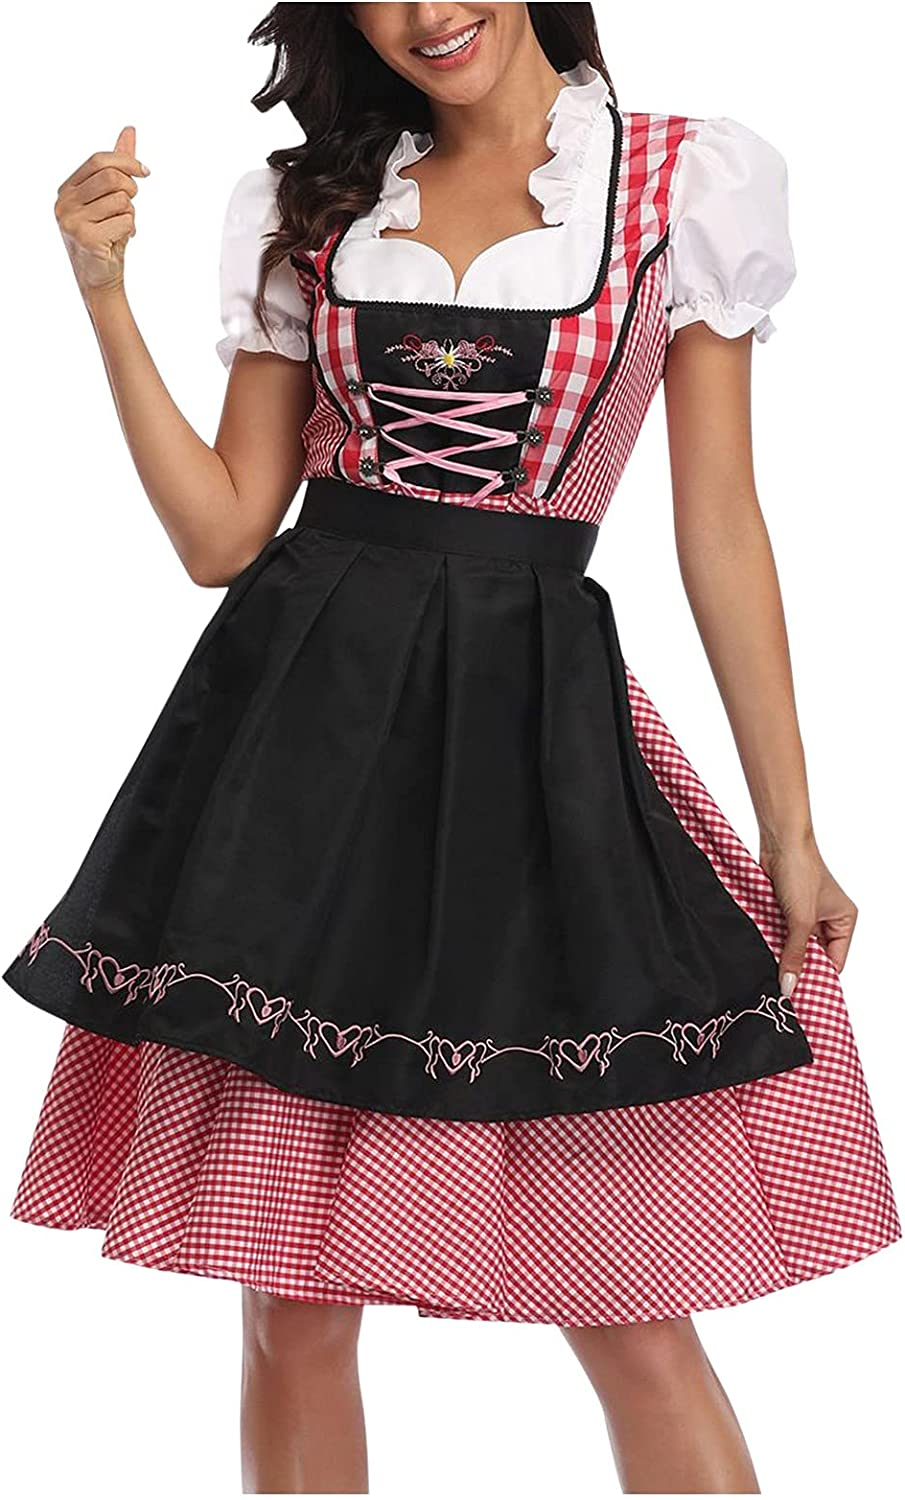 BFONE Women Bavarian Beer Maid Halloween Outfit Costume Ok Dress Fort Max 58% OFF Worth Mall